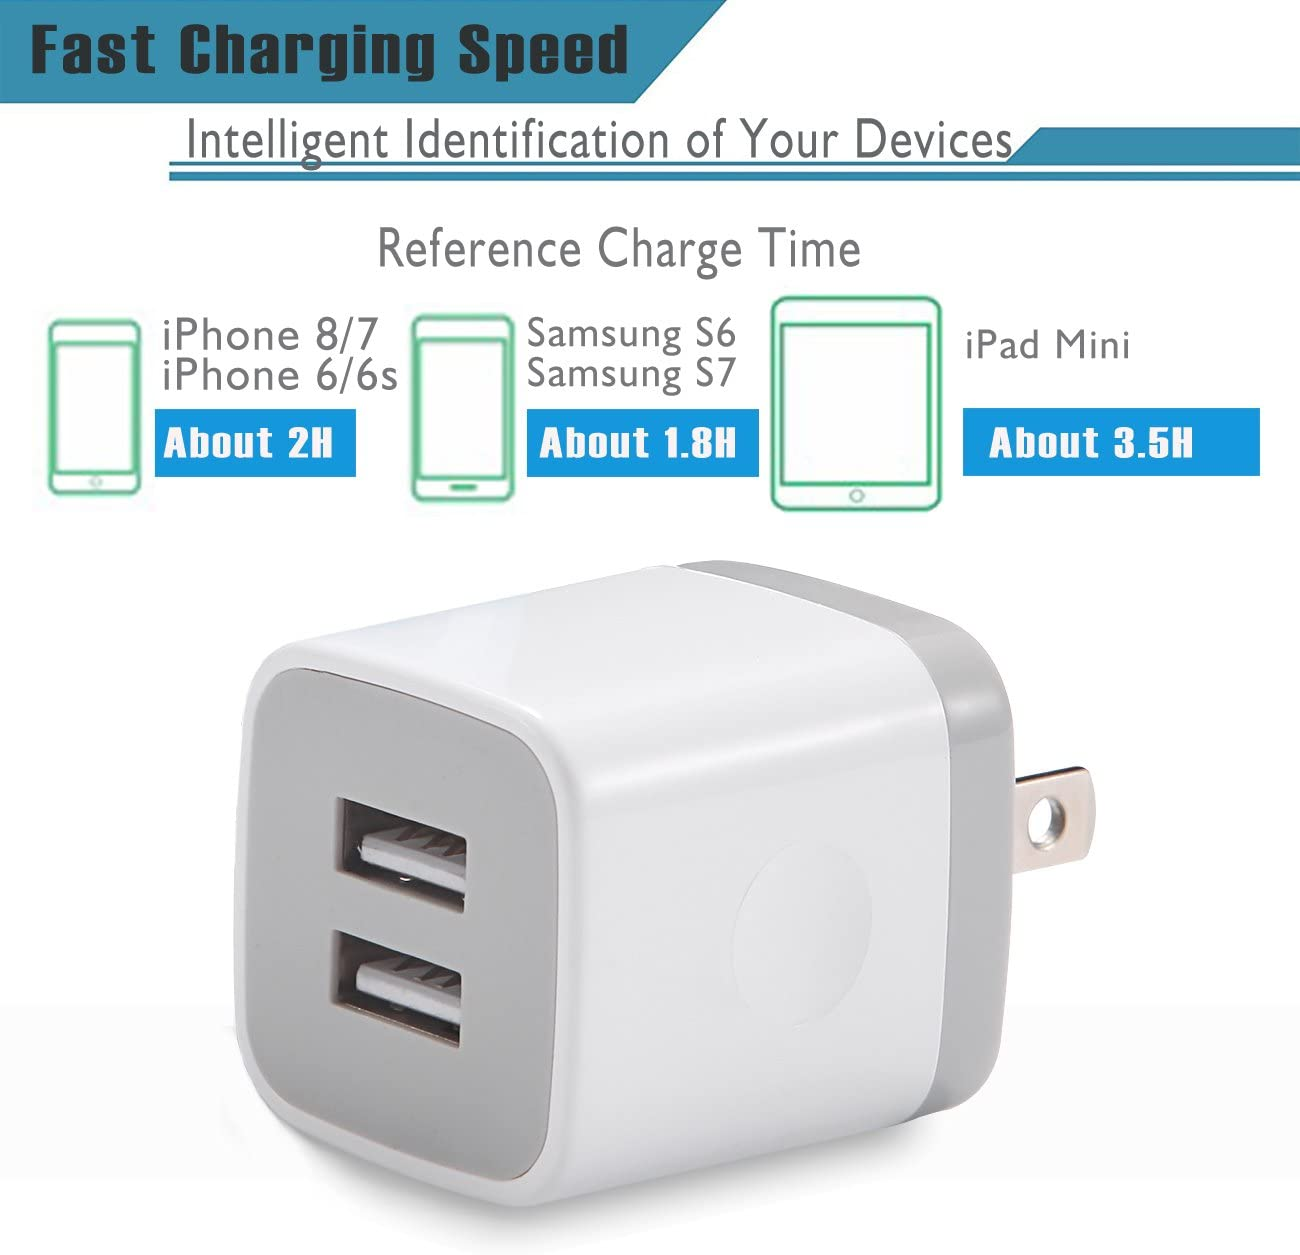 Andriod More Samsung Galaxy S8 S7 S6 Edge Moto LG iPad USB Plug 2-Pack 2.1A Dual Port Power Adapter Charging Block Compatible with iPhone Xs Max XR X 8 7 6S 6 Plus 5S LEEKOTECH USB Wall Charger